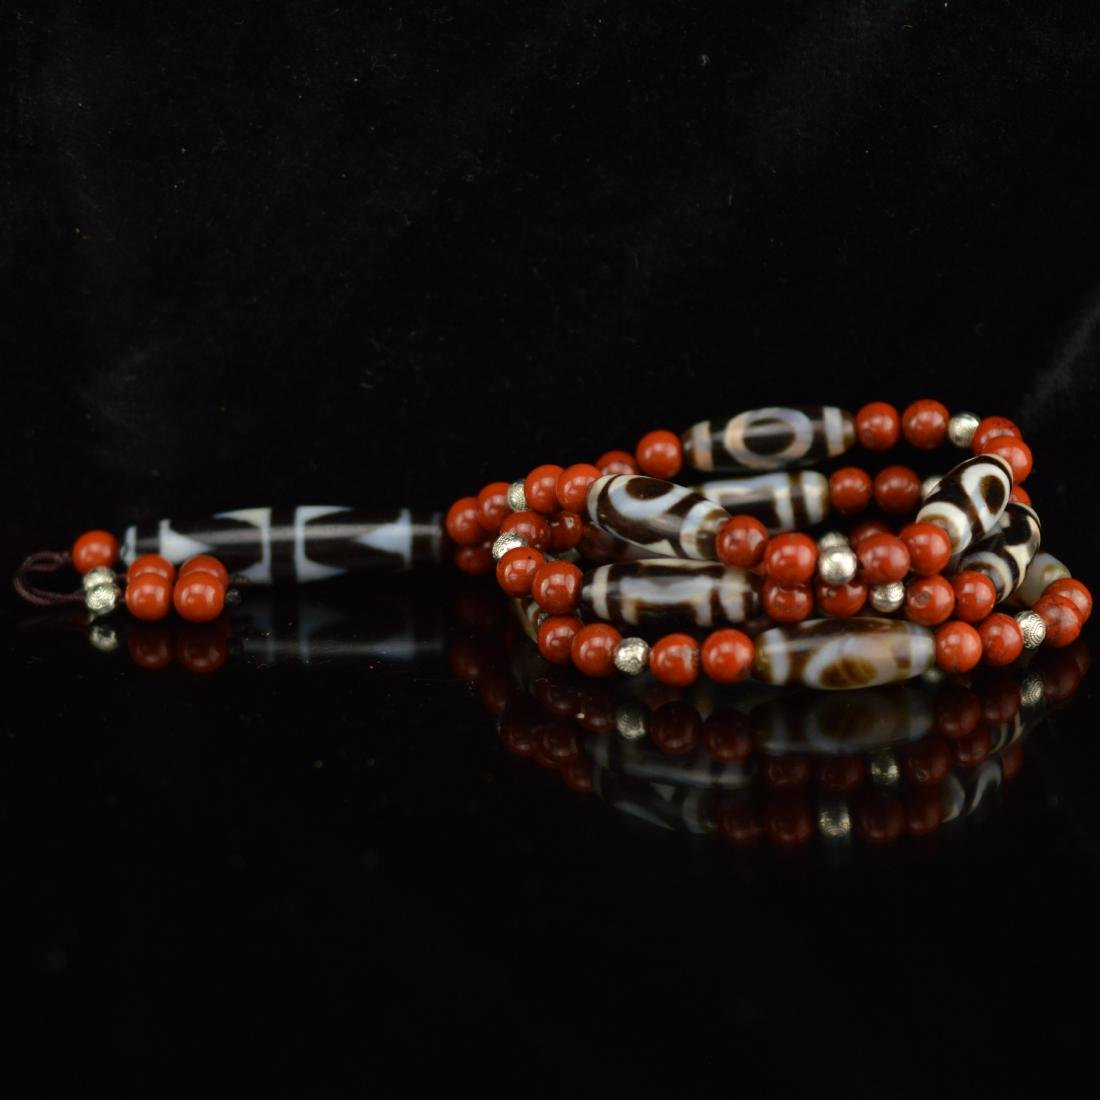 Tigertooth southern red agate DZI necklace